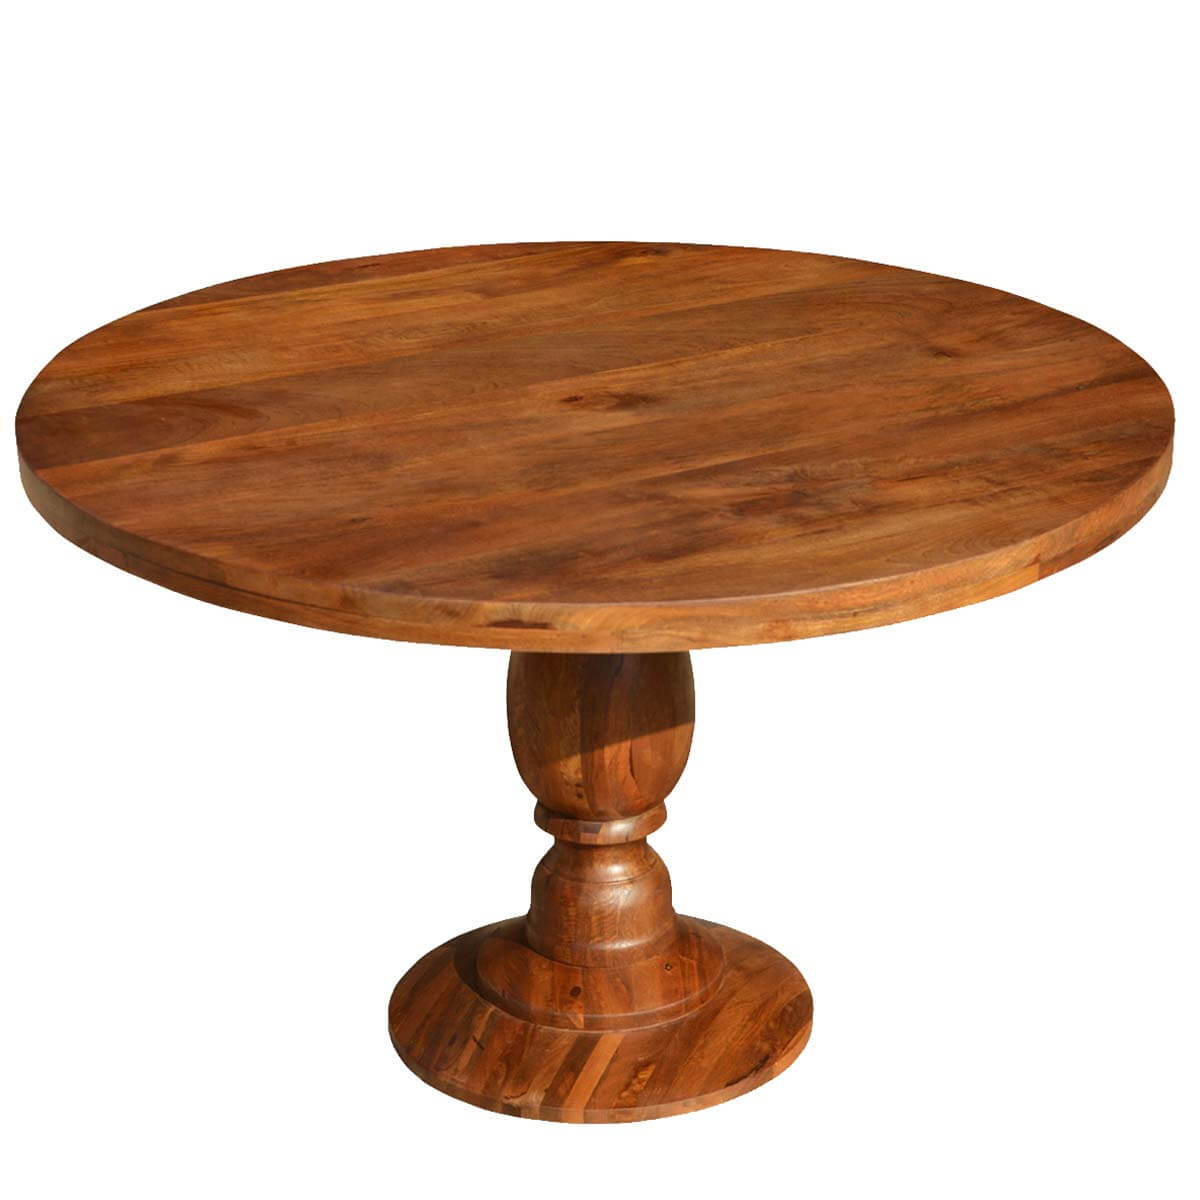 rustic colonial american solid wood 48 round pedestal dining table. Black Bedroom Furniture Sets. Home Design Ideas